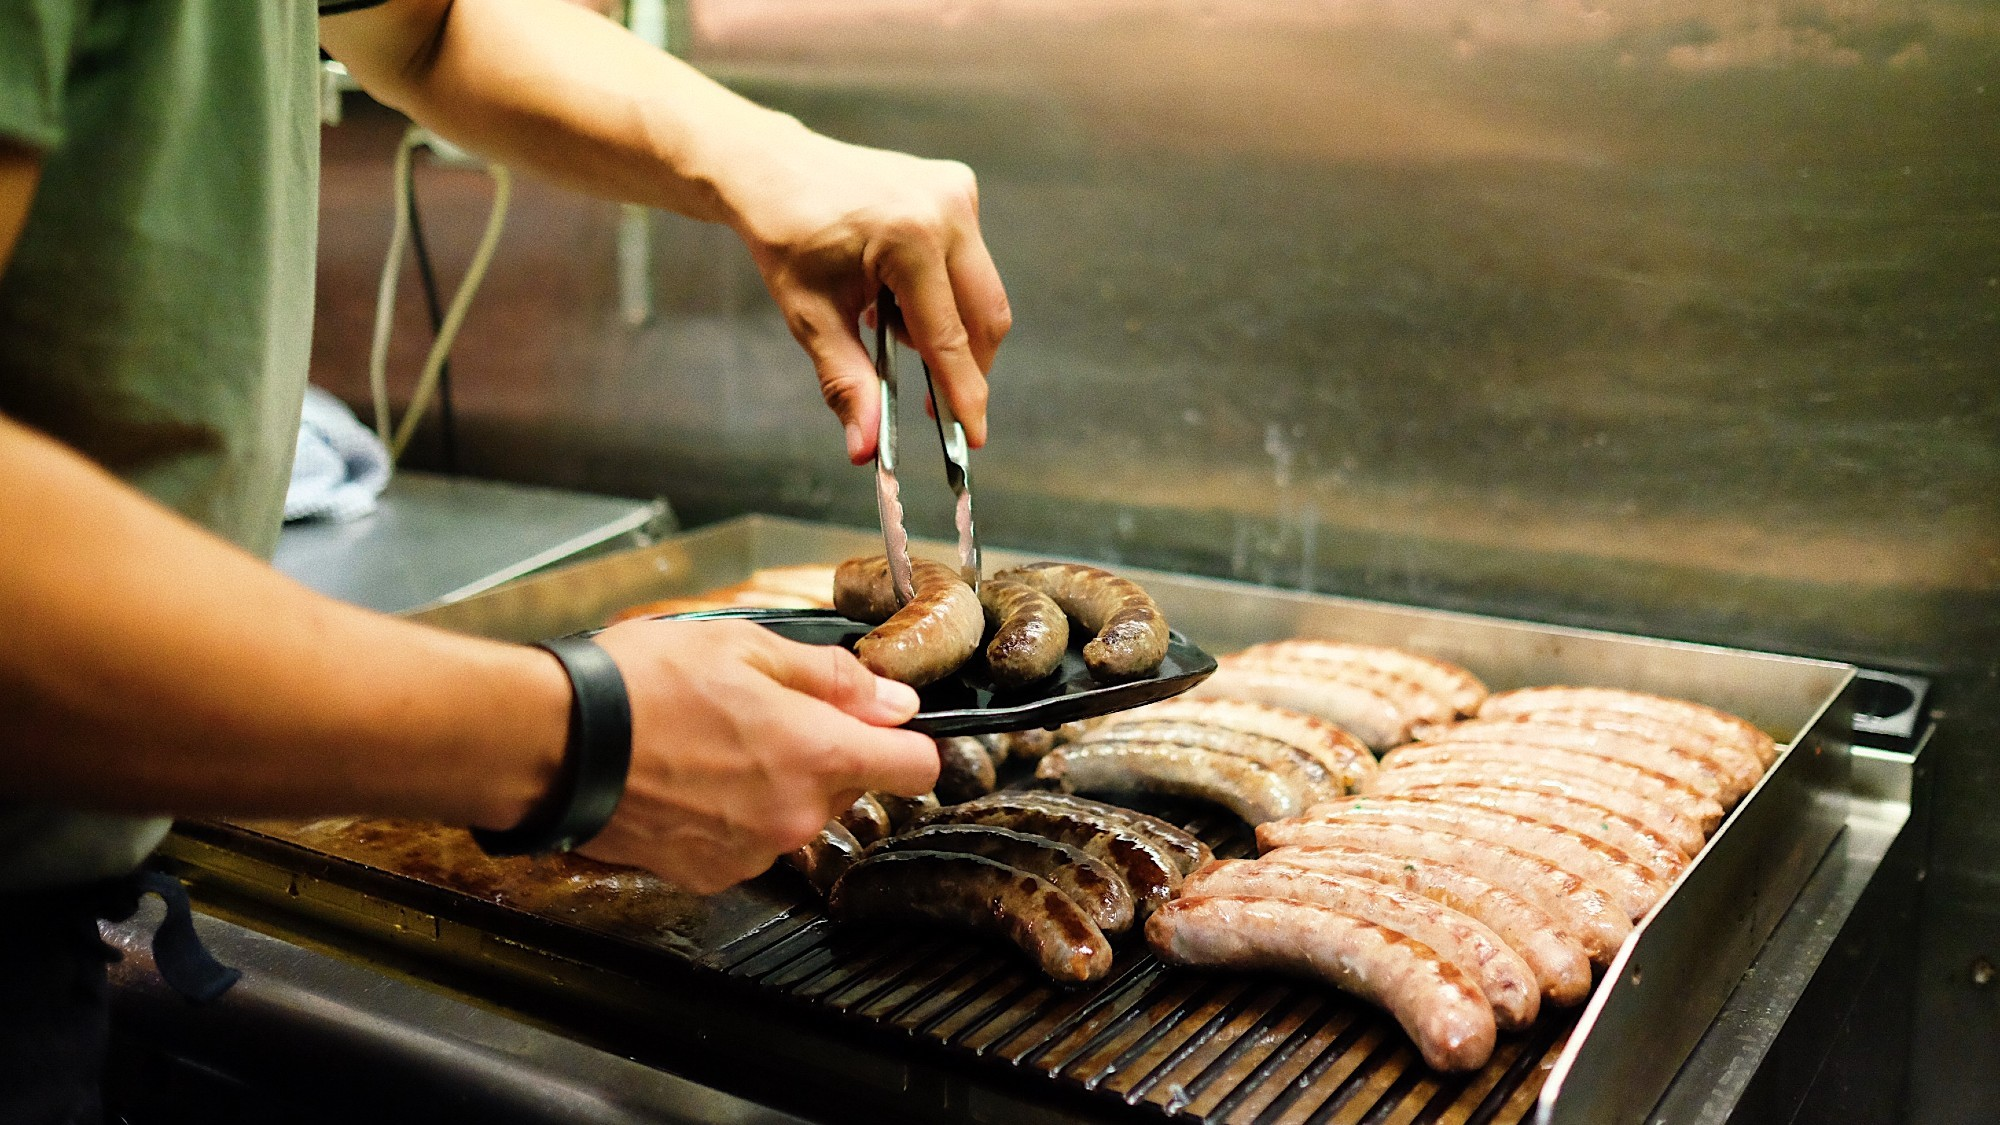 Person fills plate with sausages from industrial grill with rows of sausages.